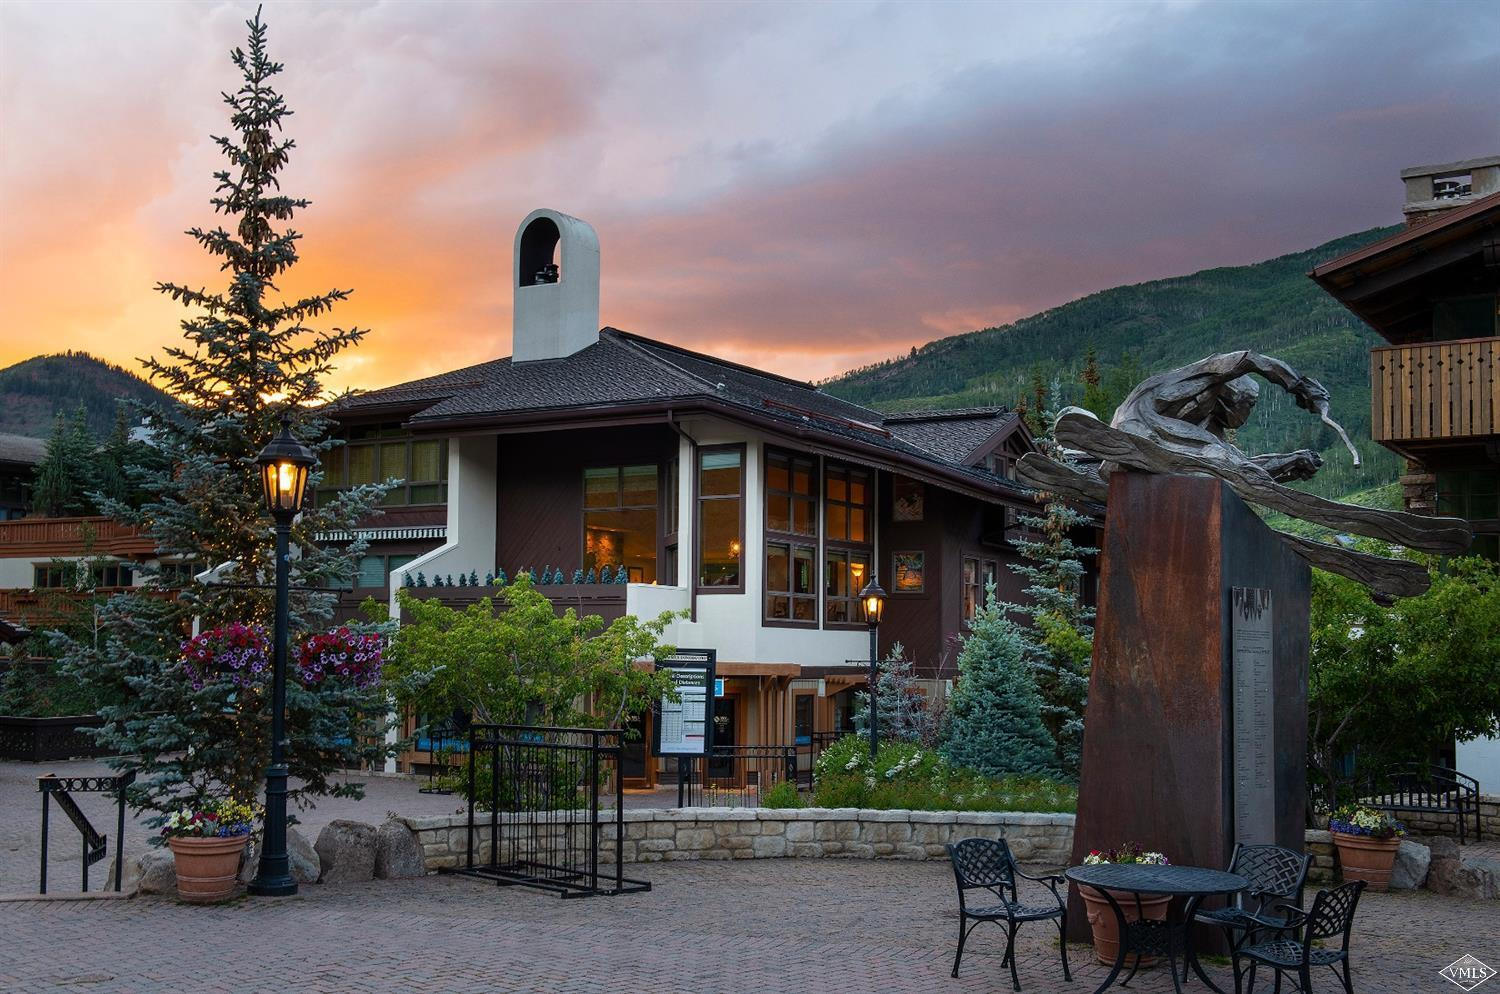 Rare opportunity to own in an exclusive and quiet building right at the base of Vail Mountain, mere steps to Gondola One and the shops and restaurants of Vail Village. Tremendous views of the ski slopes and the base area, this is 'beachfront' living in Vail. The residence features an open living area with vaulted ceilings for entertaining, large windows and deck which frame the view, assigned parking in an underground garage, use of guest parking, and ski locker.